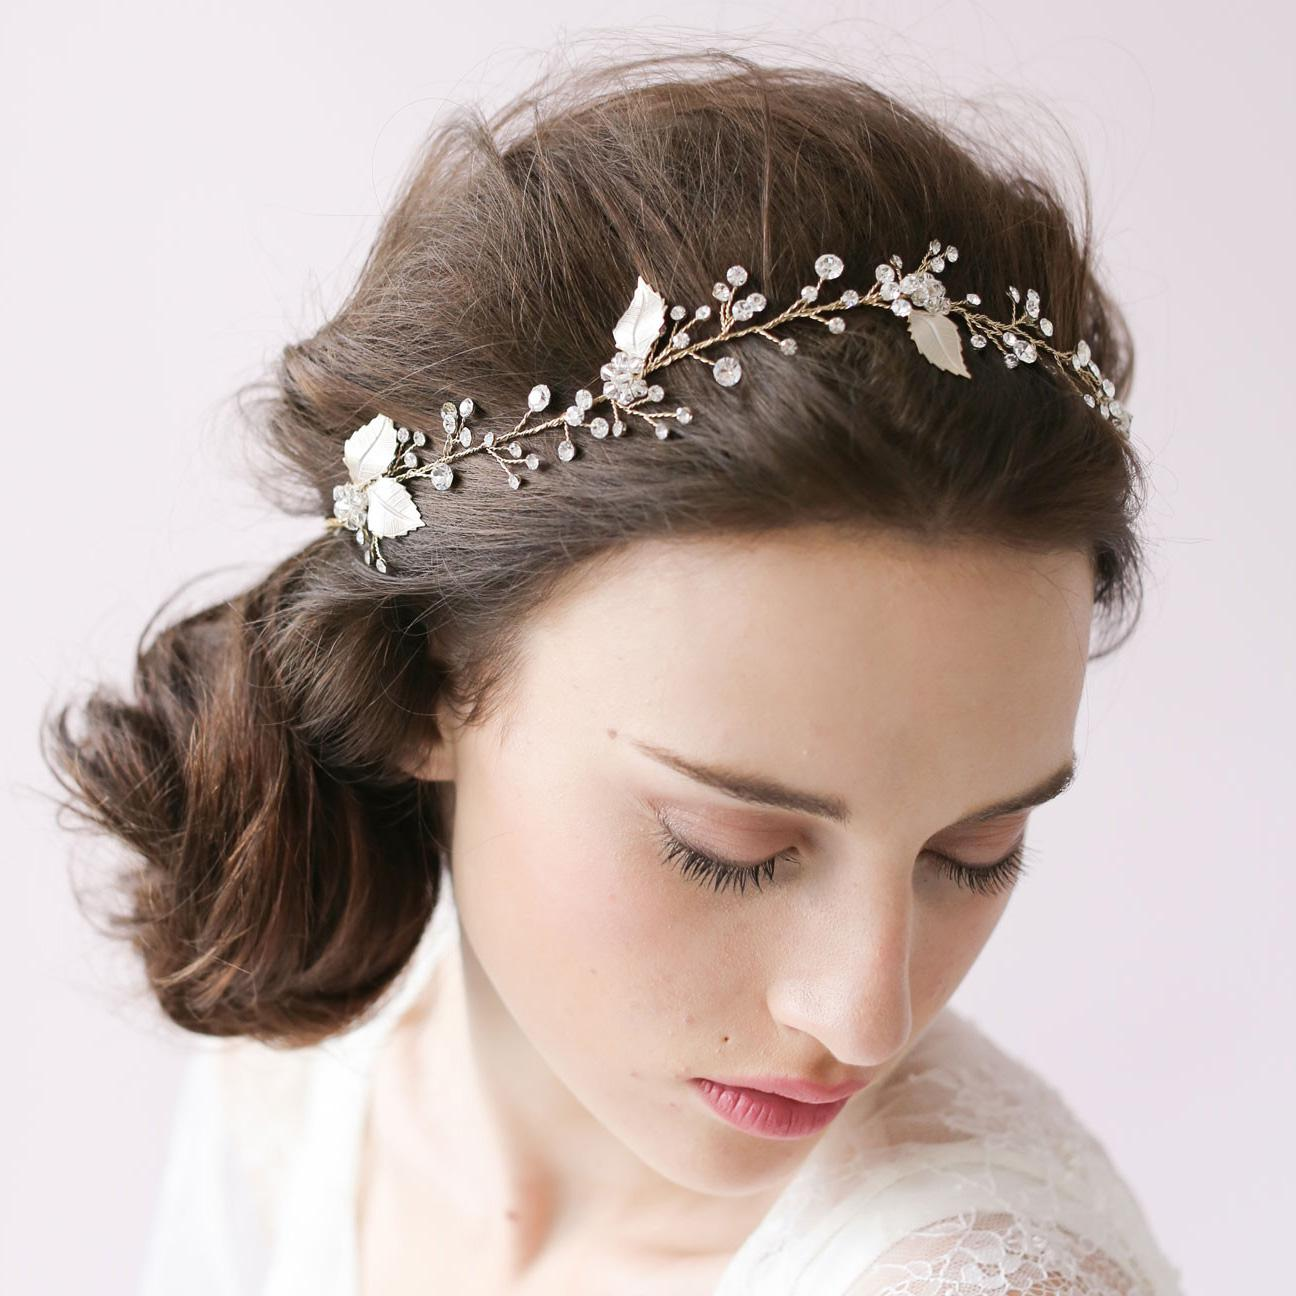 crystal sparkle hair vine petals blossom wedding headband bride